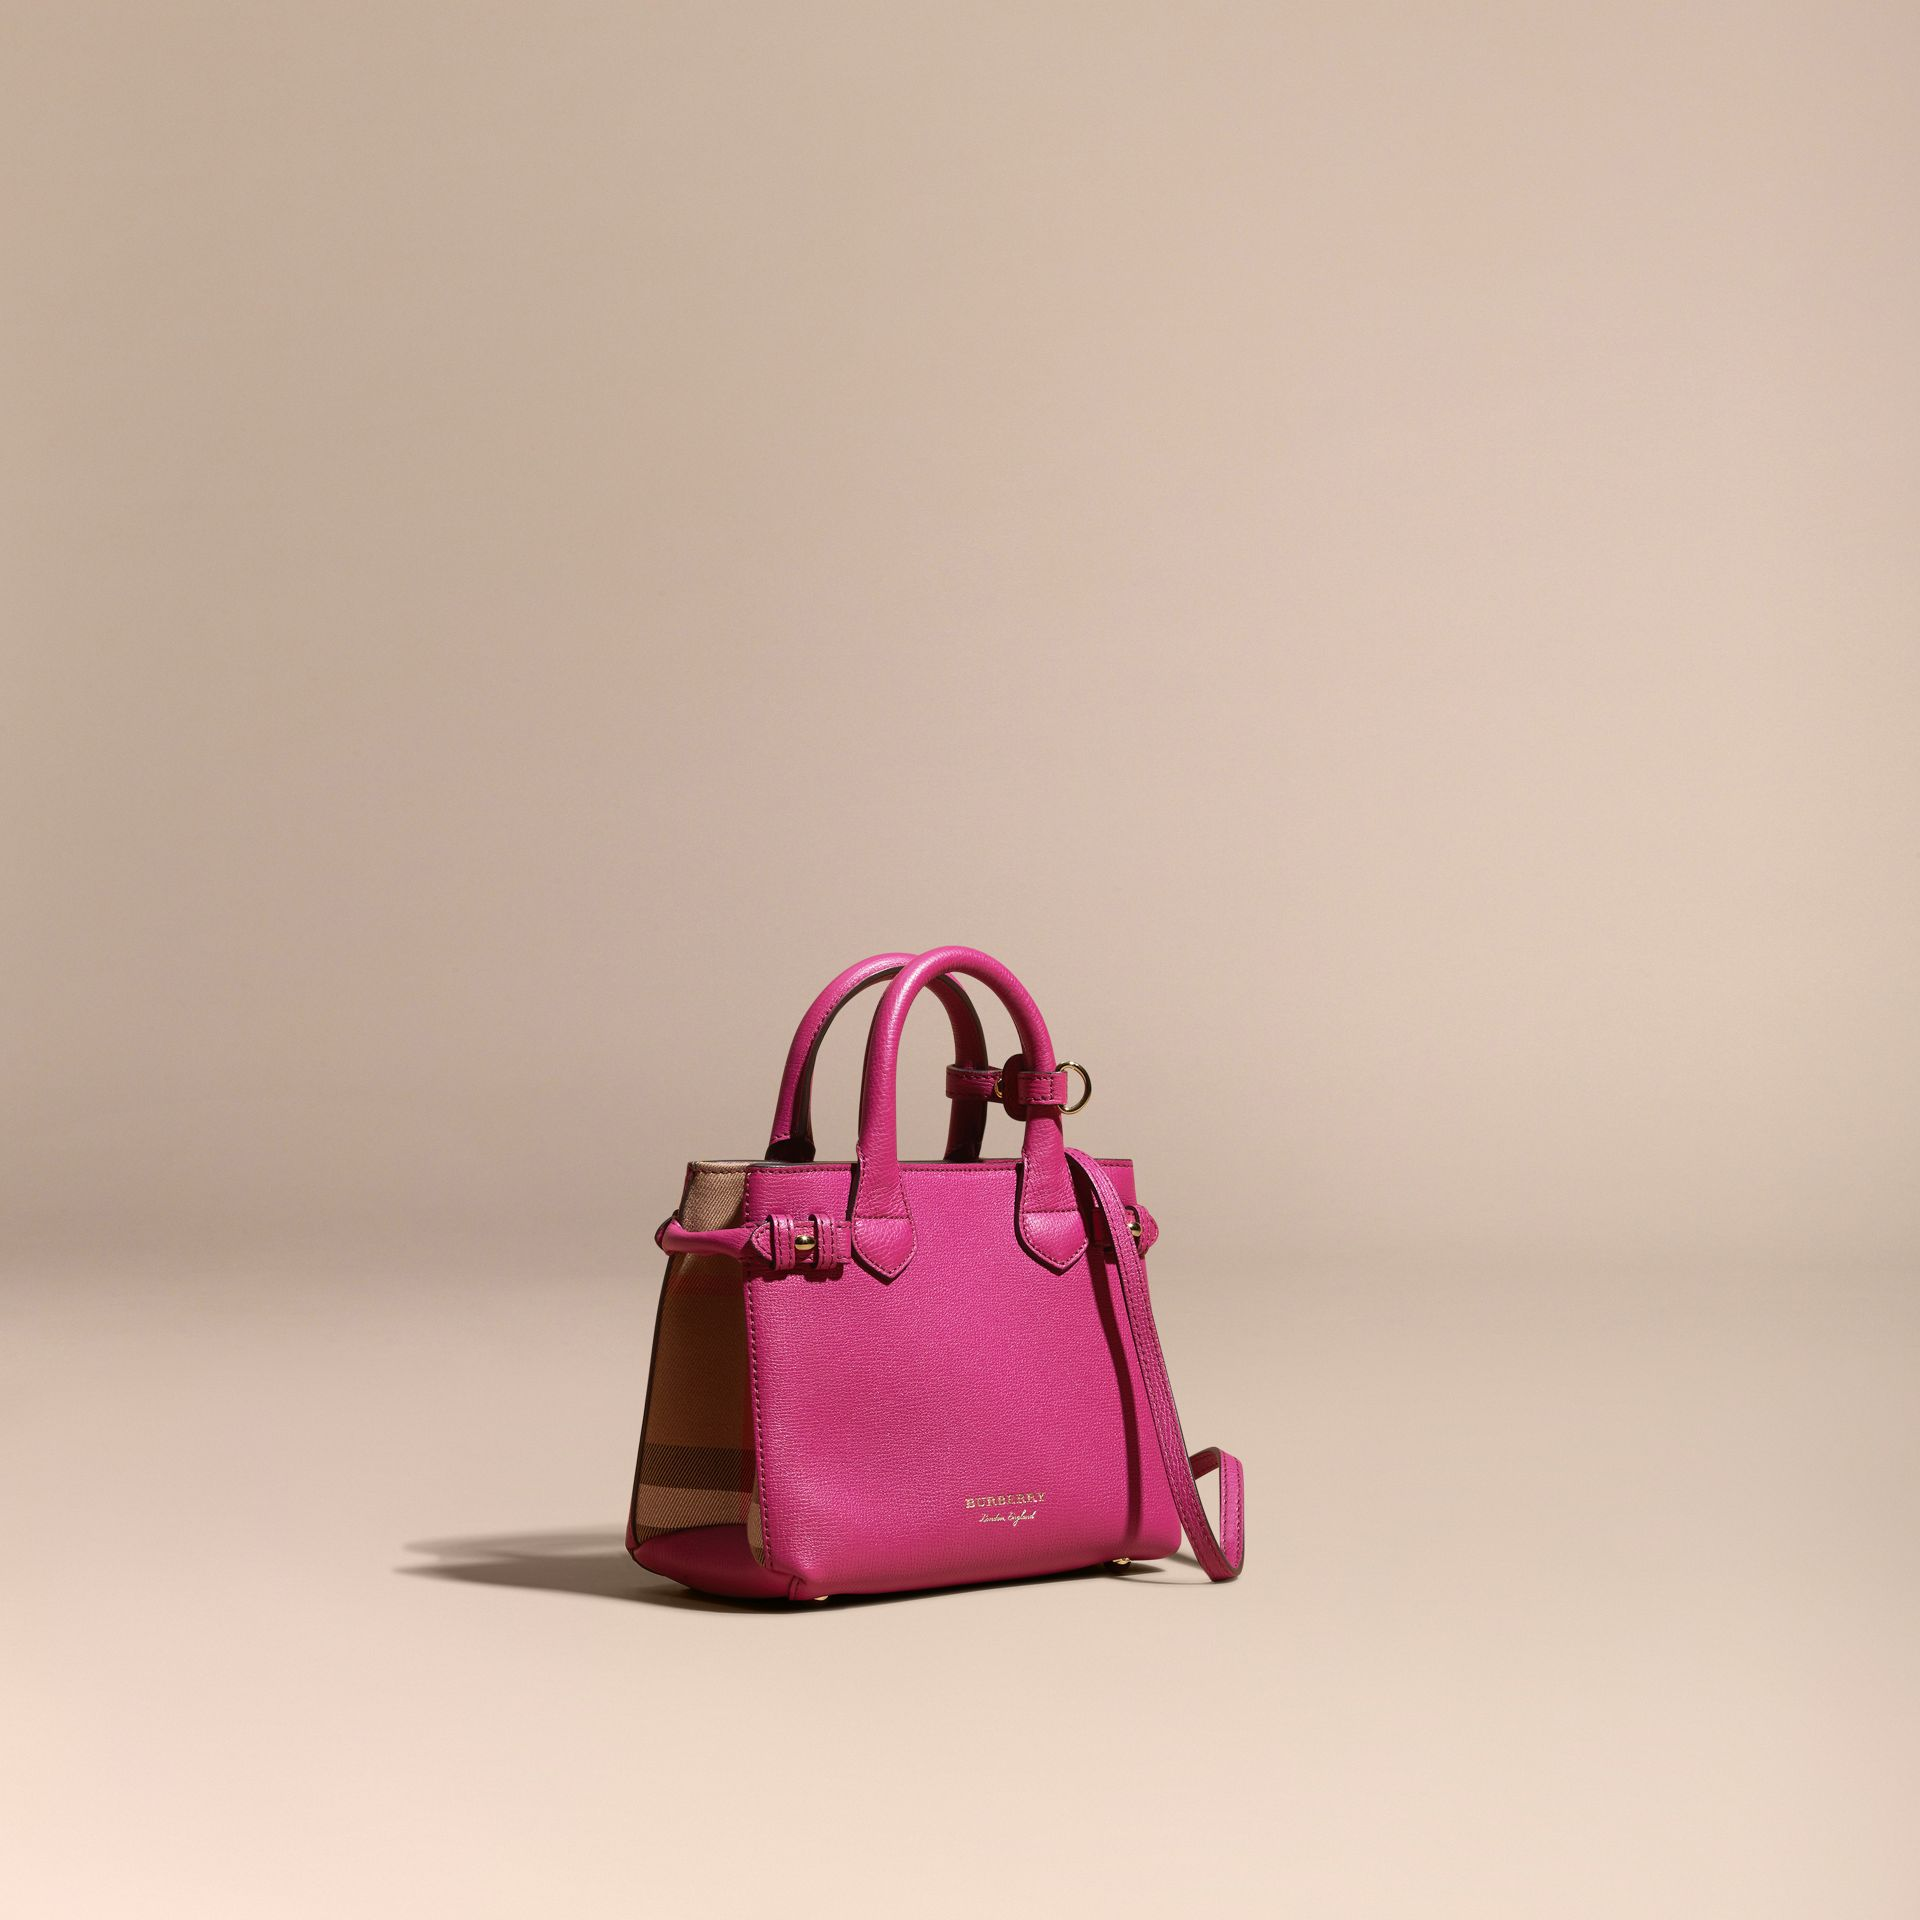 Fucsia brillante Borsa The Baby Banner in pelle con motivo House check Fucsia Brillante - immagine della galleria 1